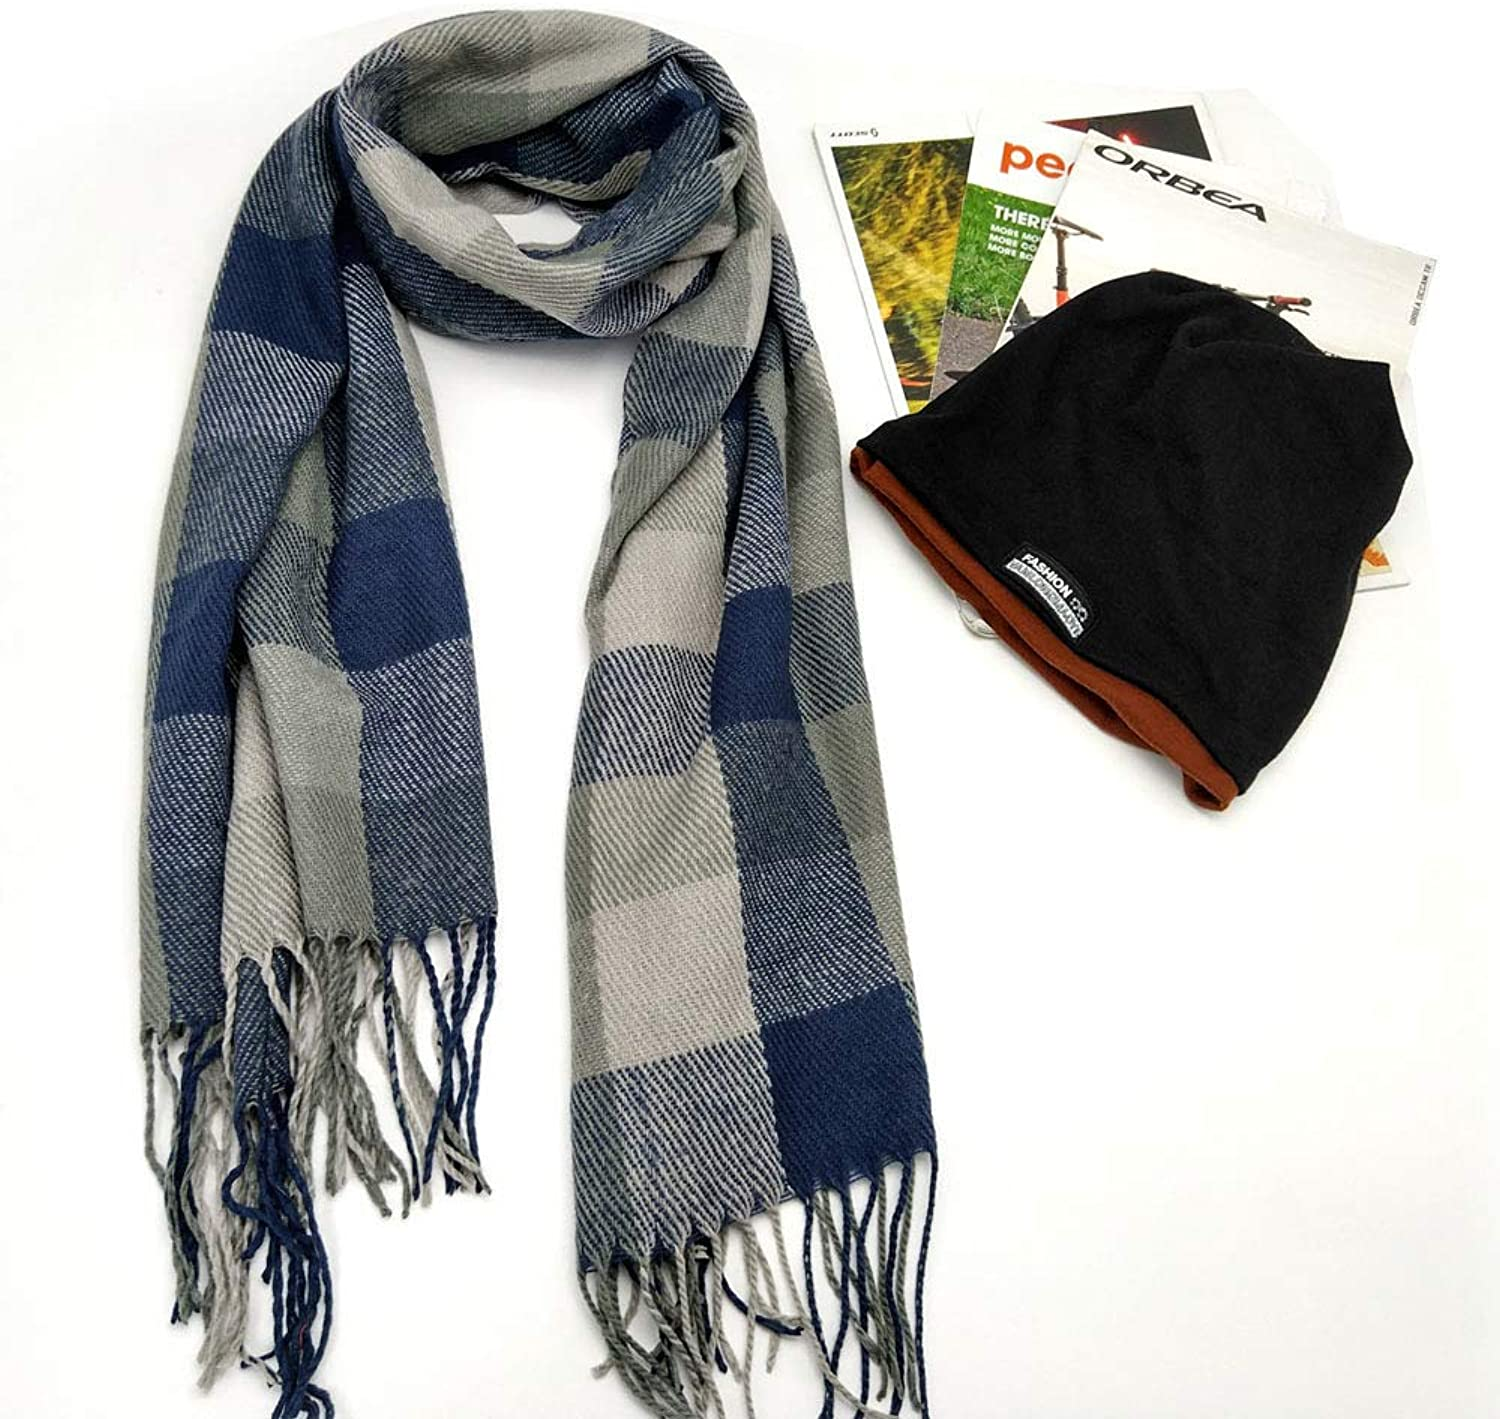 Plaid Shawl Luxurious Cashmere Feel Winter Scarf Beanie Hat Set, Multiple Ways Of Wearing Scarf Set For Women And Men